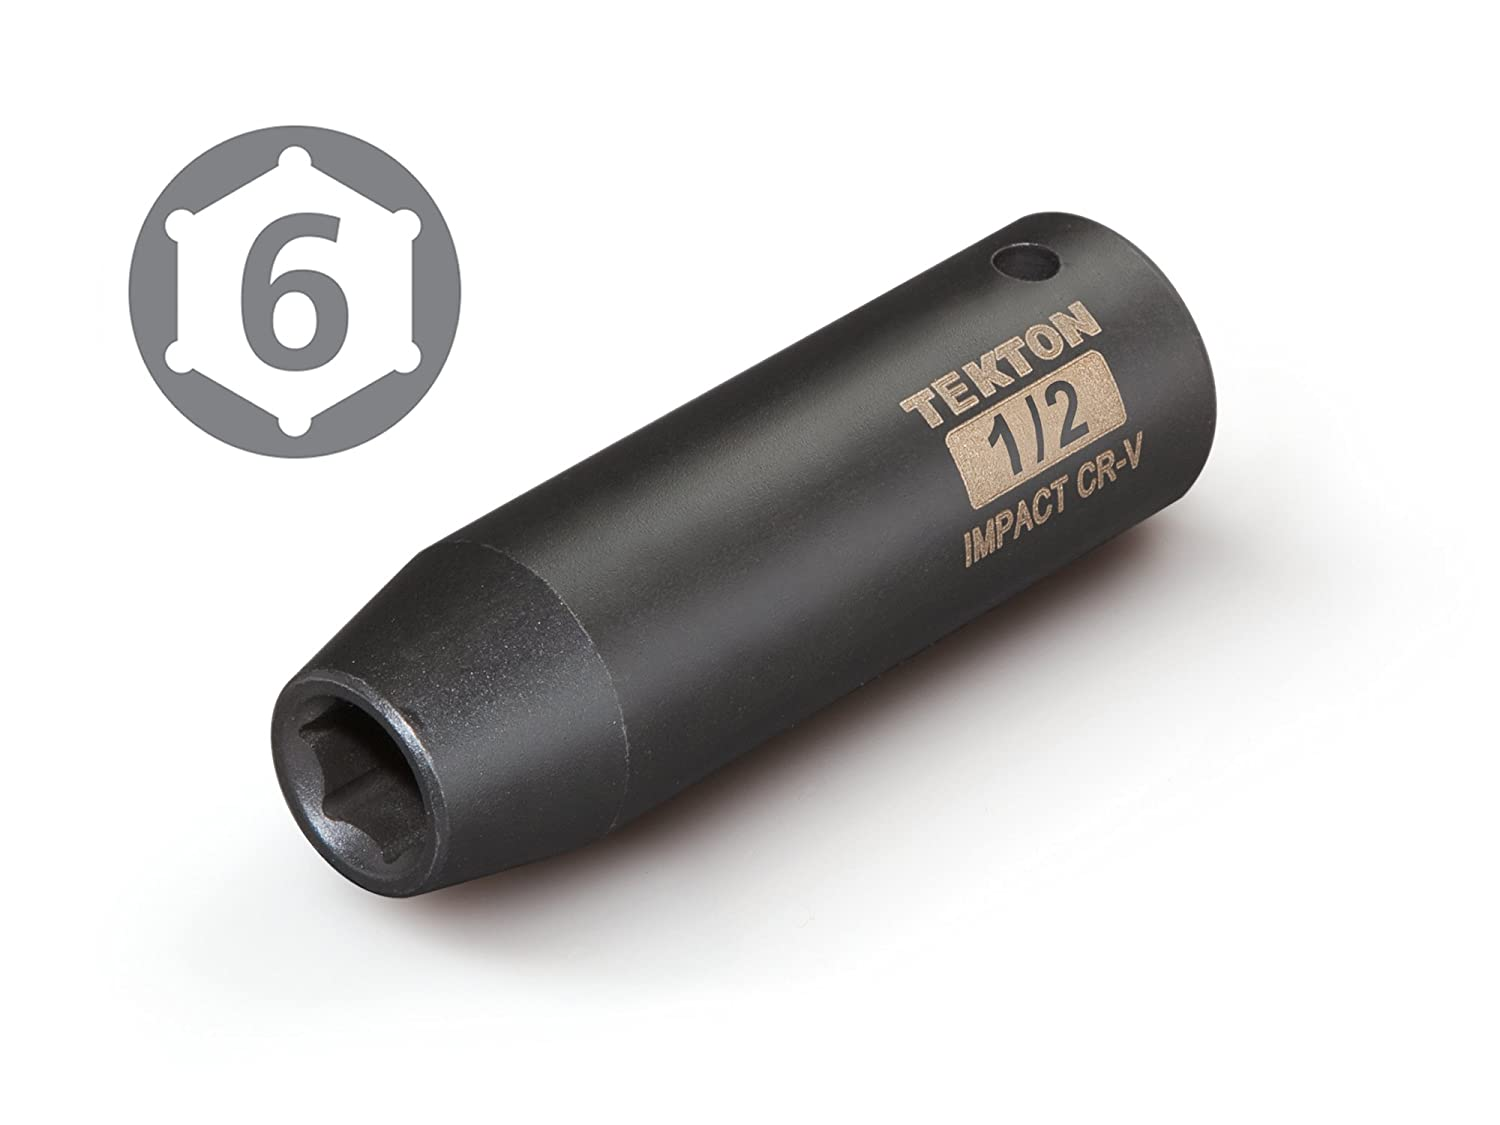 Cr-V Drive by 11 mm Deep Impact Socket TEKTON 47802 1//2 in 6-Point